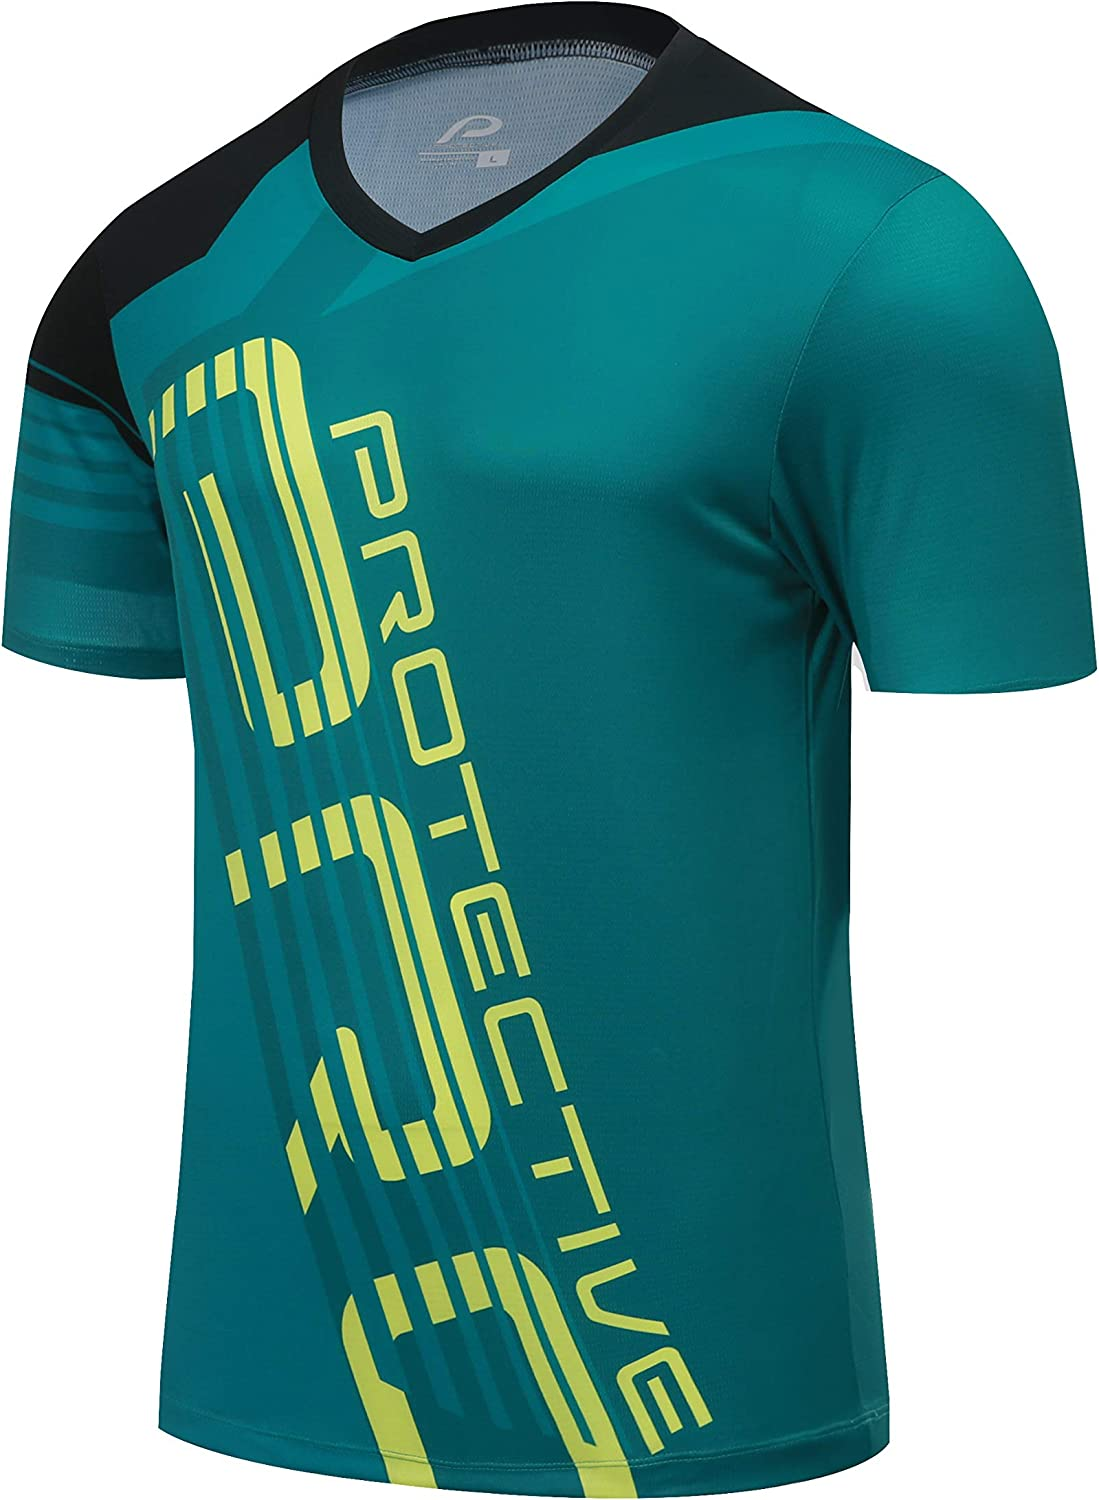 Protective Men's Cycling Save money v-Neck Jersey MTB Loose Sleeves f Short Ranking TOP20